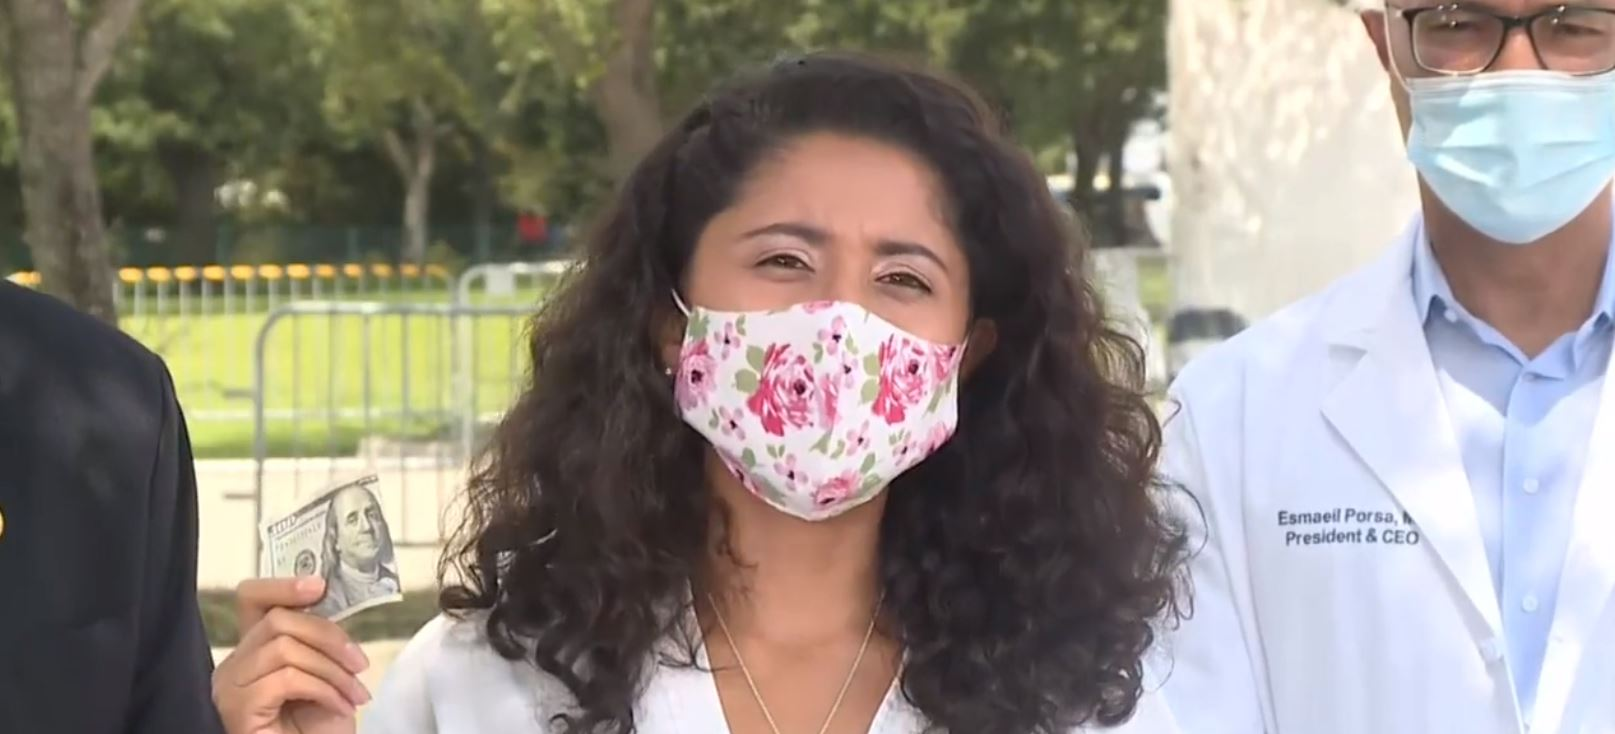 Harris County Judge Lina Hidalgo offering $100 for who get vaccinated.